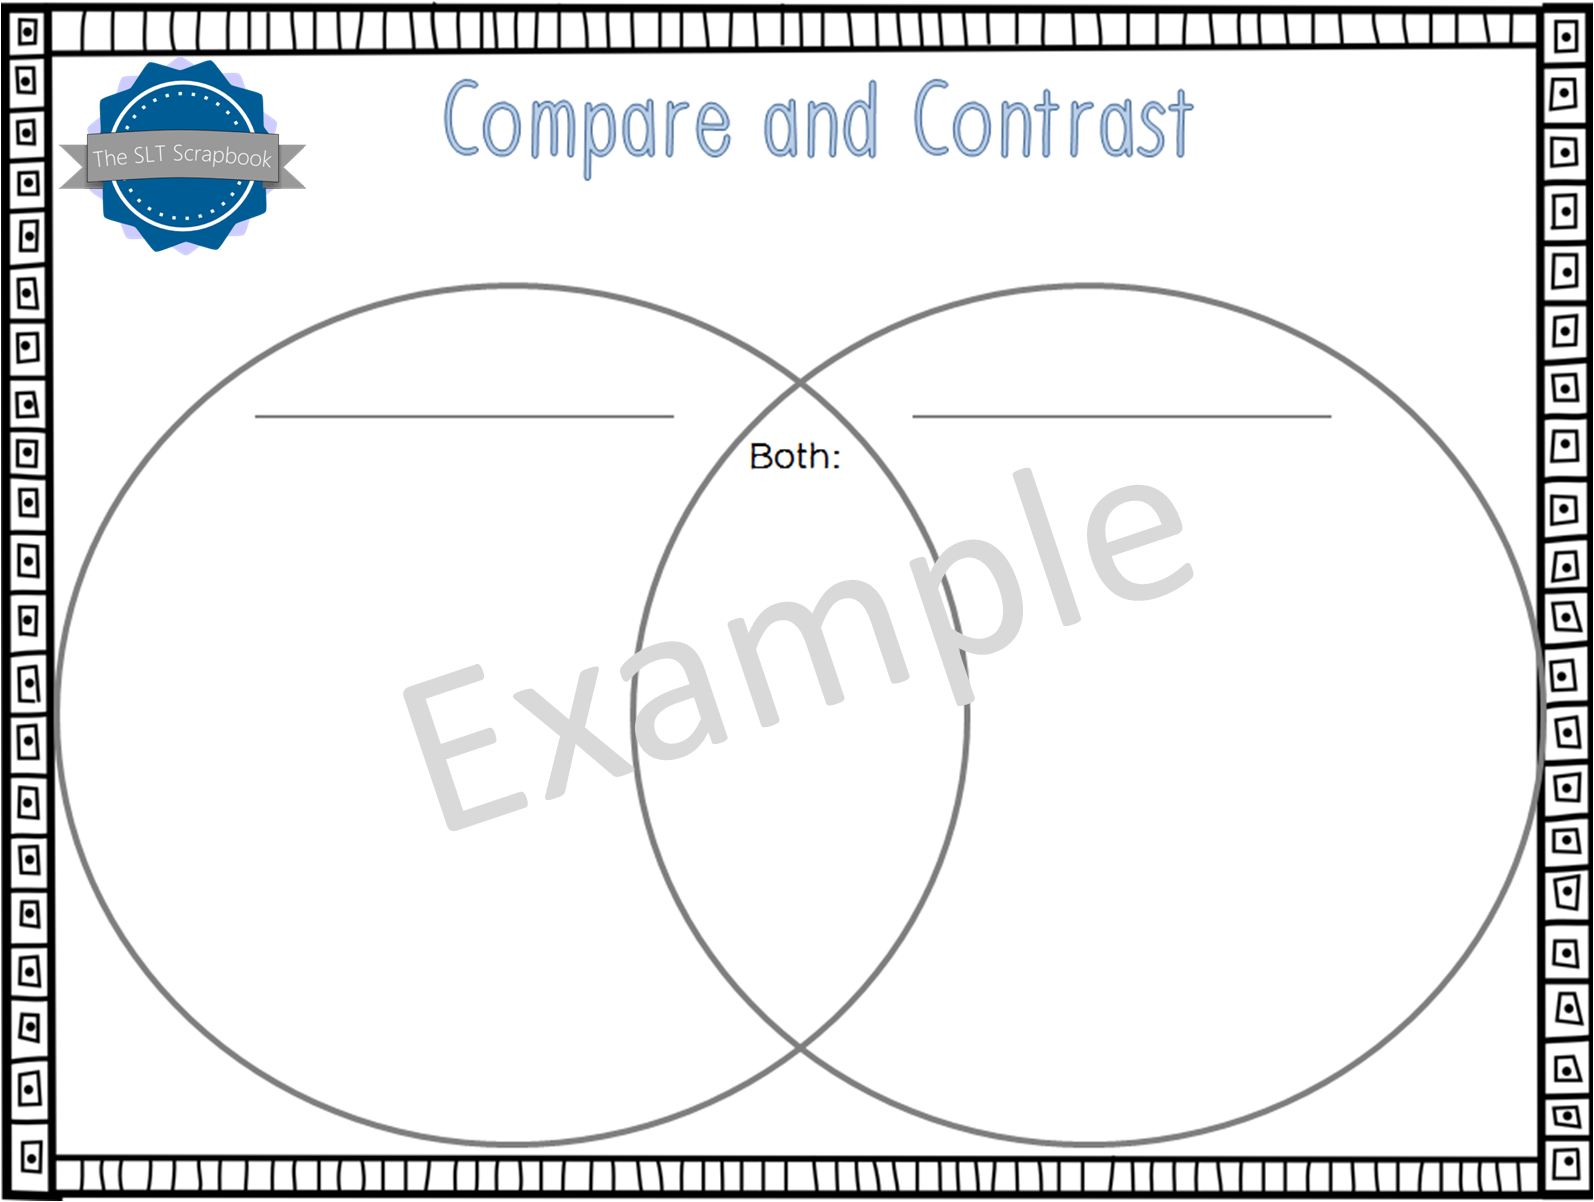 Makalah diagram ttt gallery how to guide and refrence circle diagram for minecraft gallery how to guide and refrence ccuart Choice Image